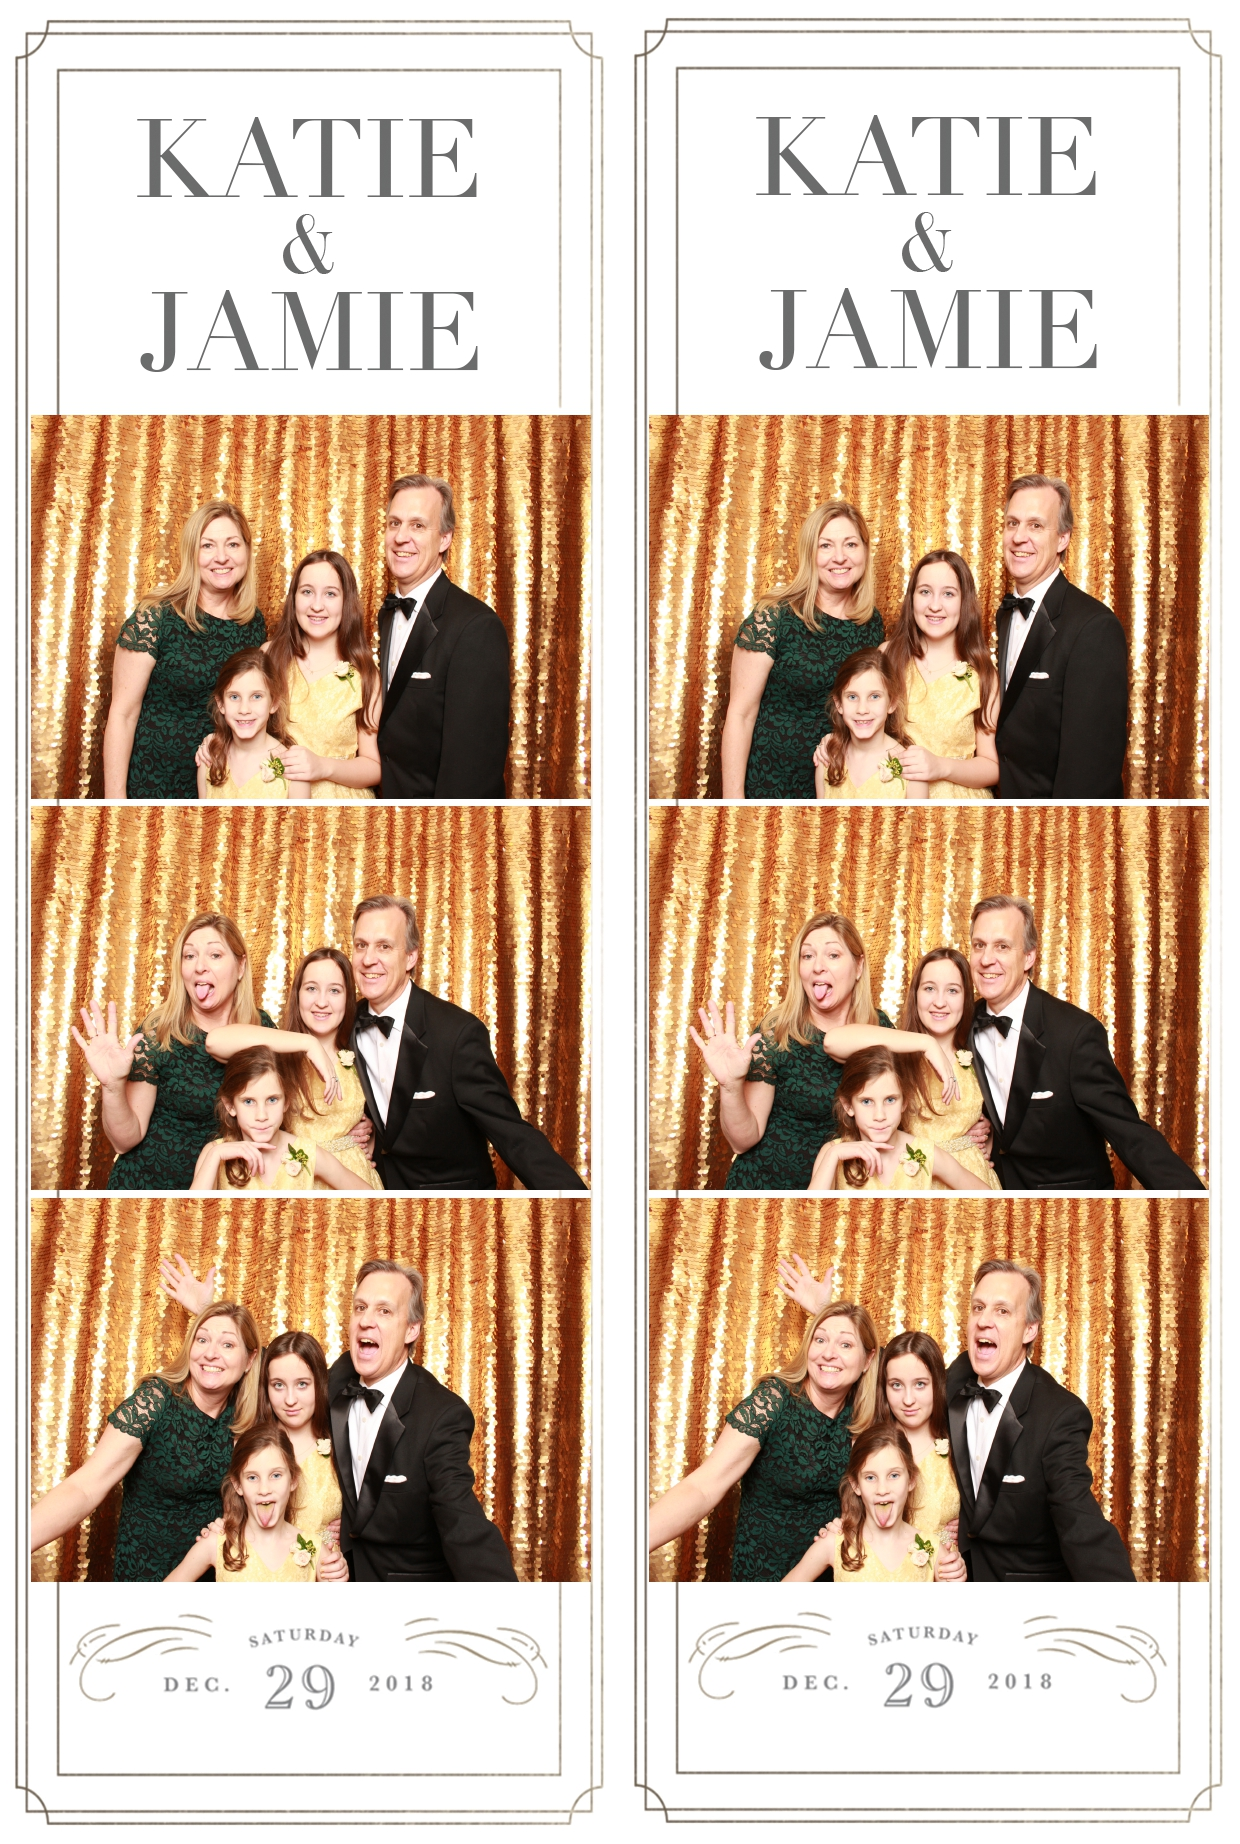 Oh Happy Day Booth - Katie and Jamie Customized26.jpg